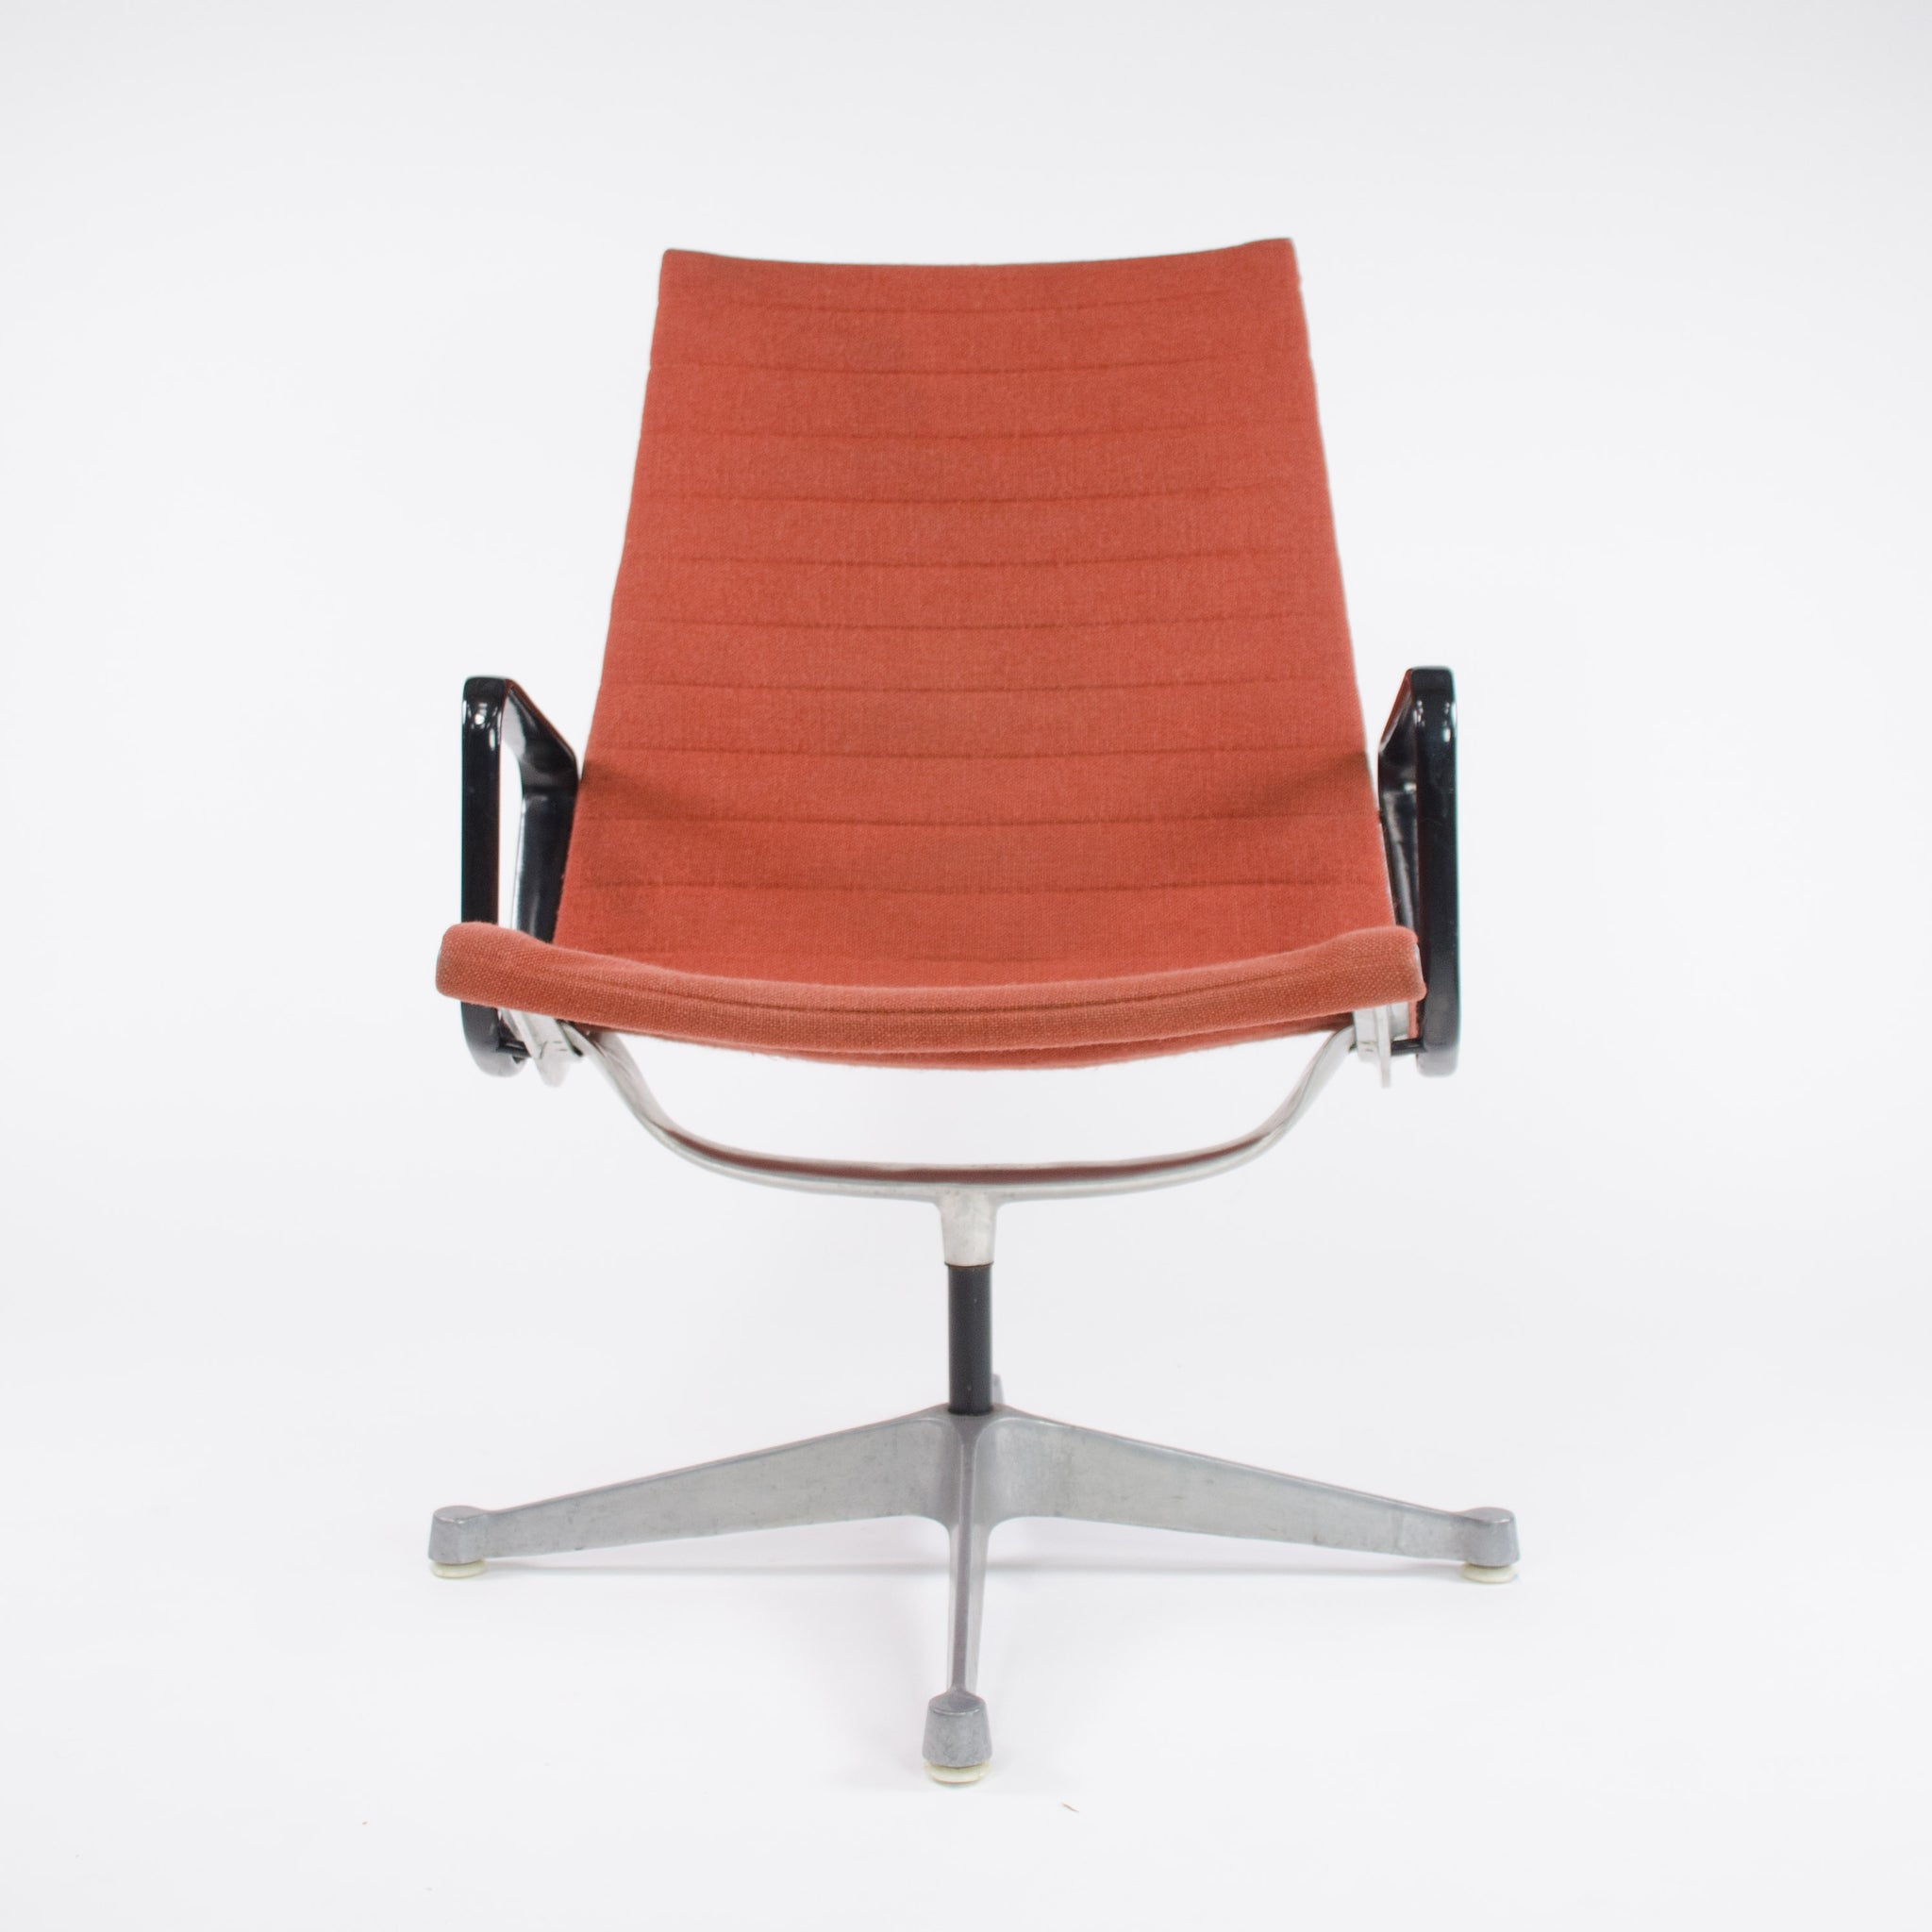 SOLD 2x Museum Quality Eames Herman Miller Aluminum Group Lounge Chairs, Fabric, MINT